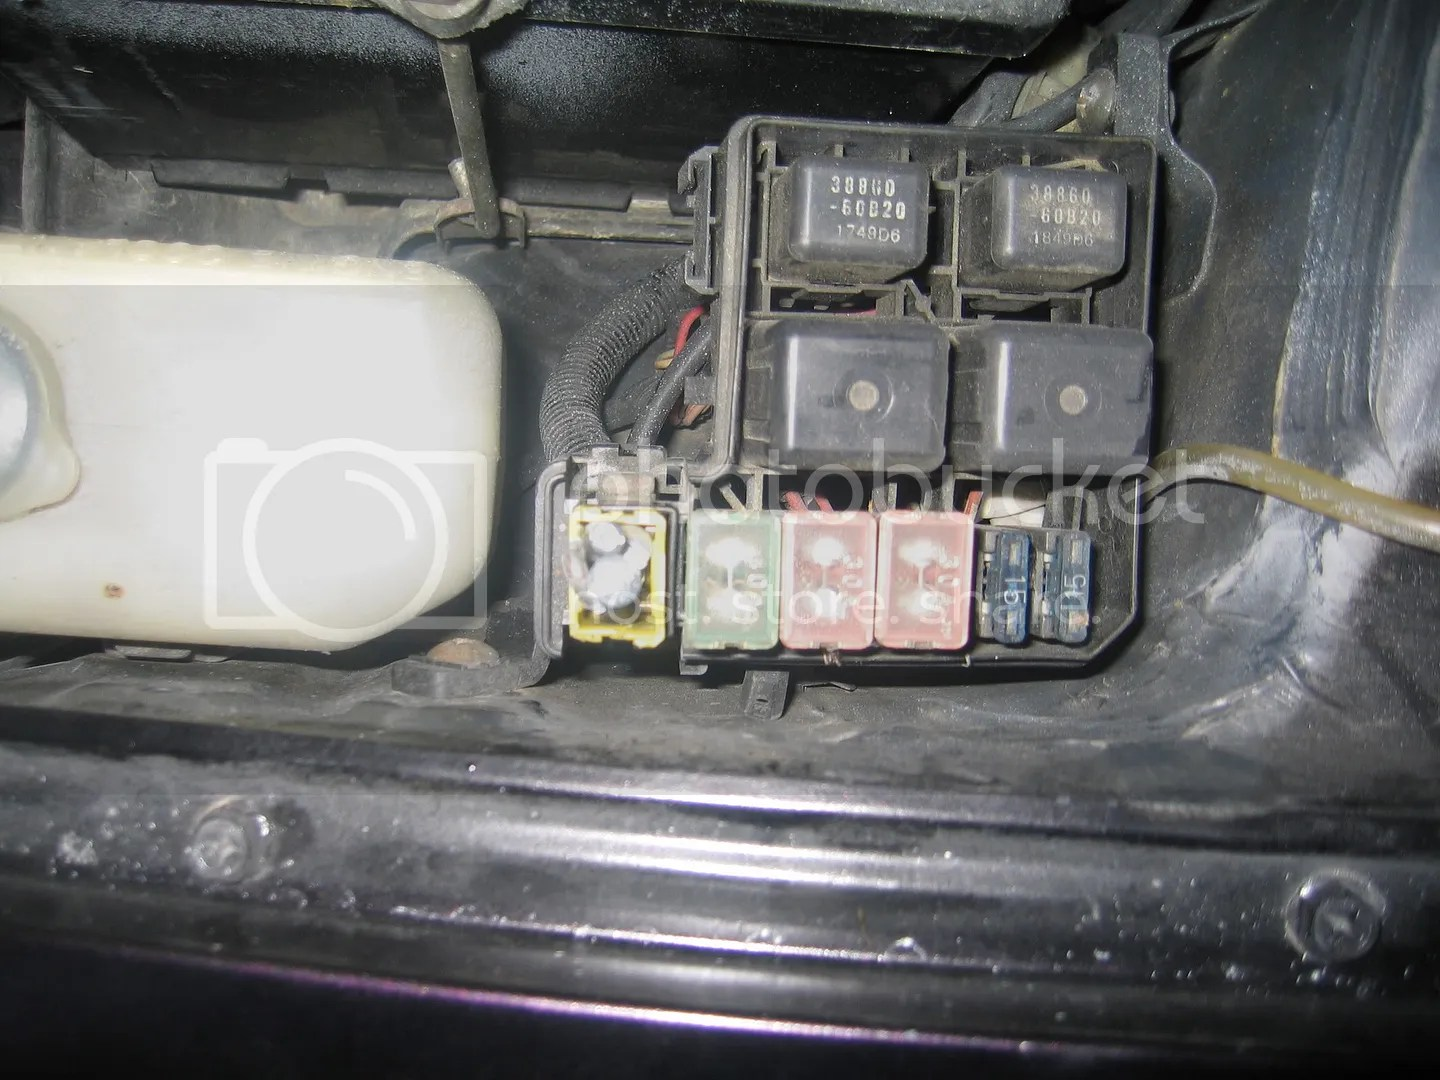 hight resolution of suzuki swift fuse box wiring diagram detailed suzuki hayabusa fuse box on suzuki swift